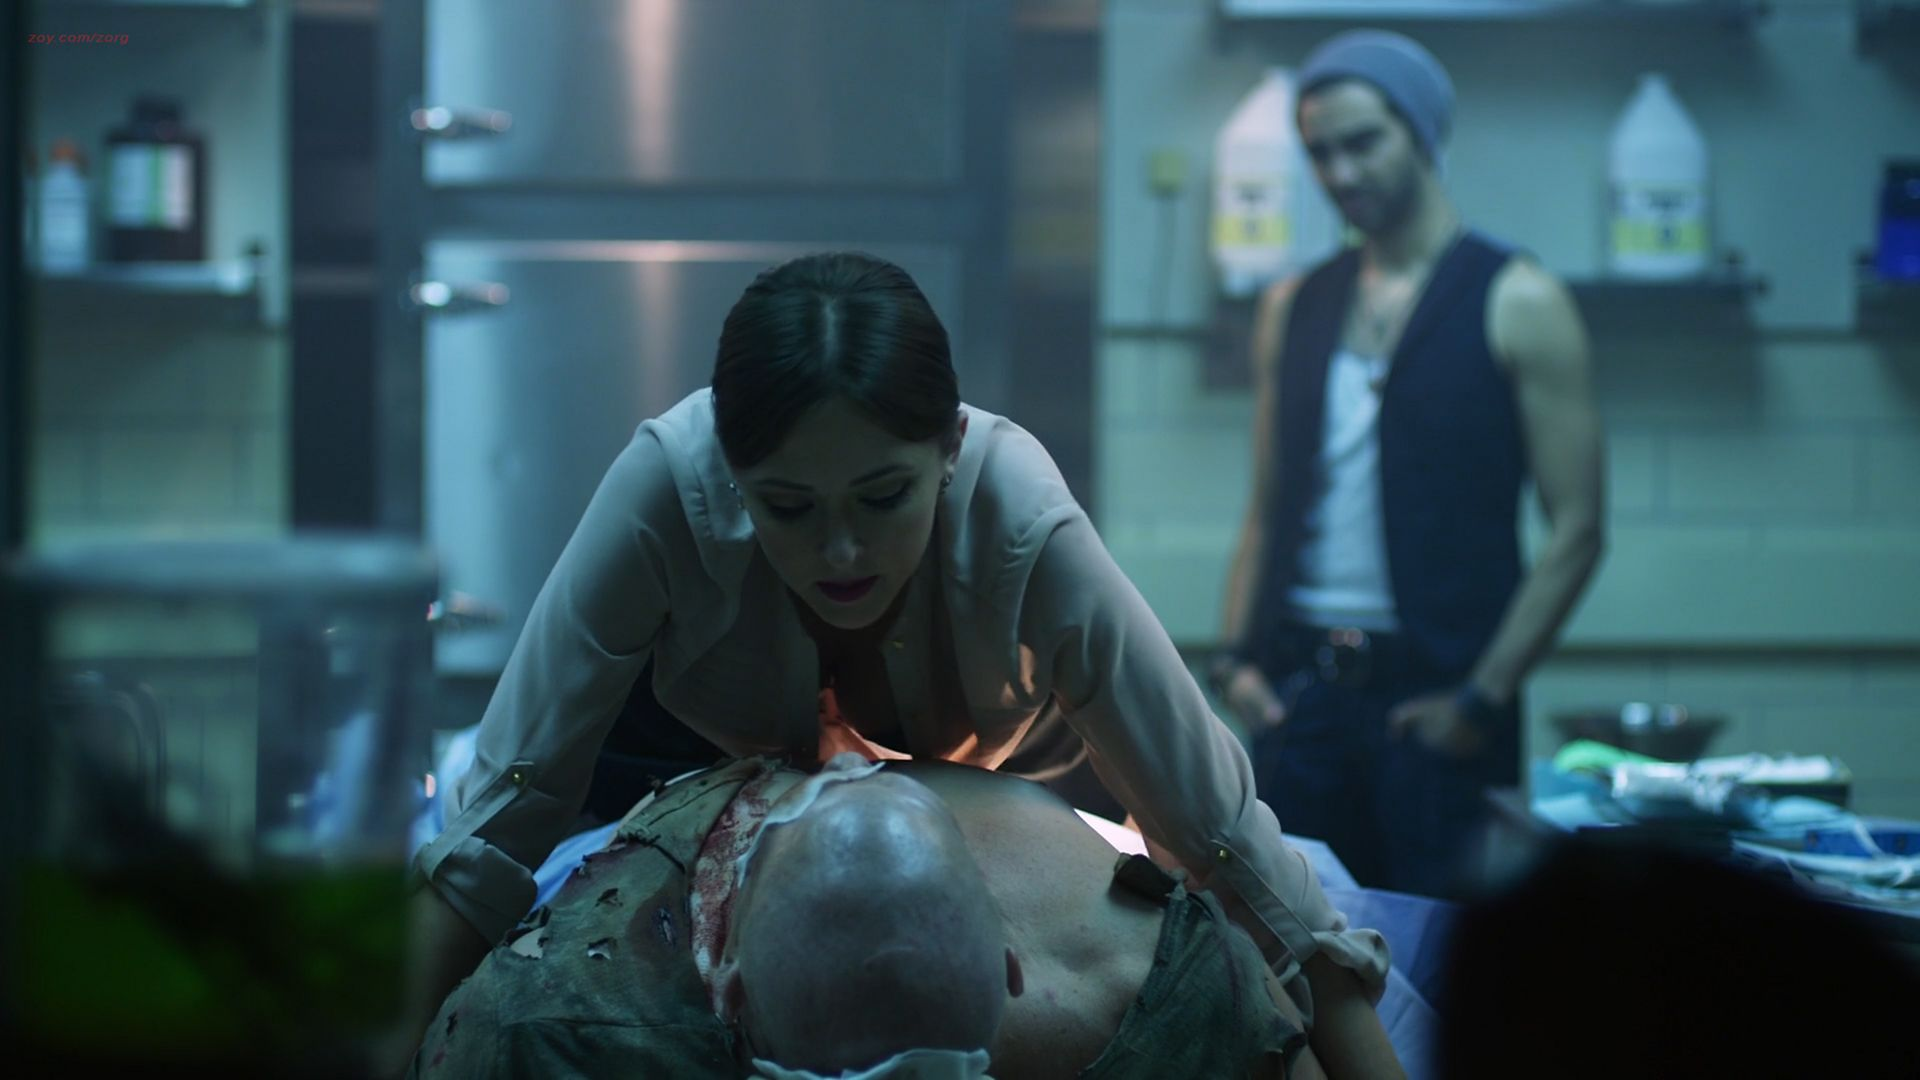 morgue sex Katharine Isabelle hot sex in the morgue – See No Evil 2 (2014) hd1080p